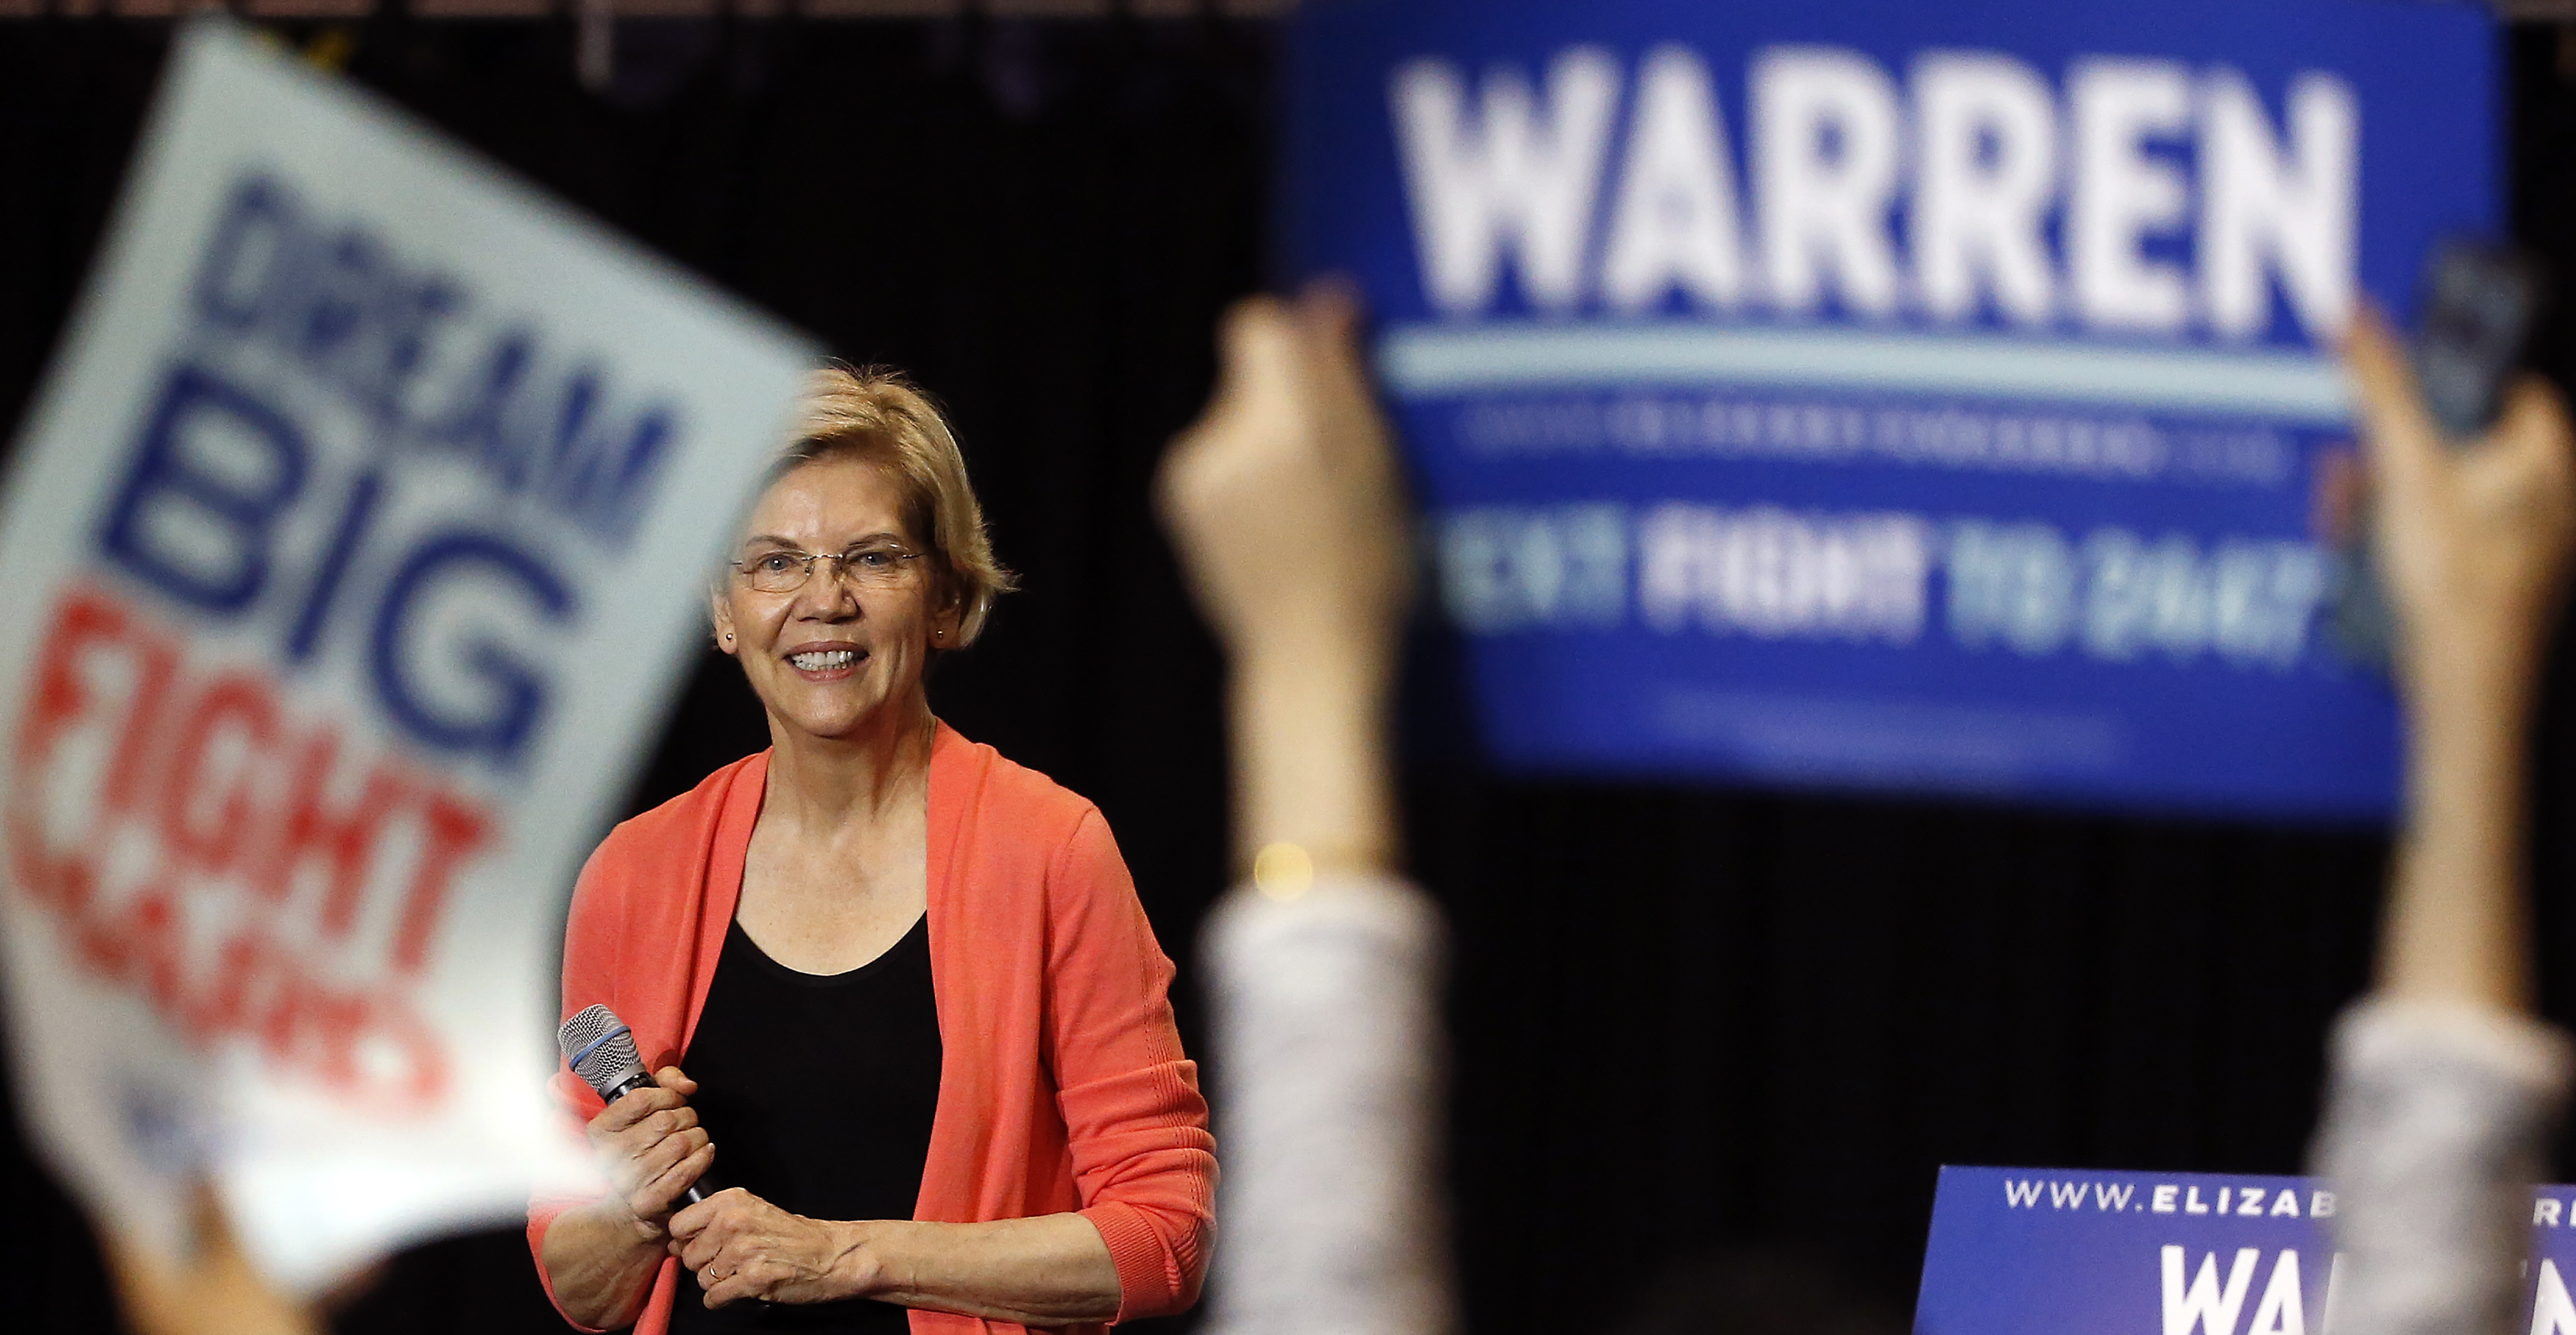 Democratic Presidential hopeful Elizabeth Warren speaks during a town hall meeting at Florida International University in Miami, Florida on June 25, 2019.